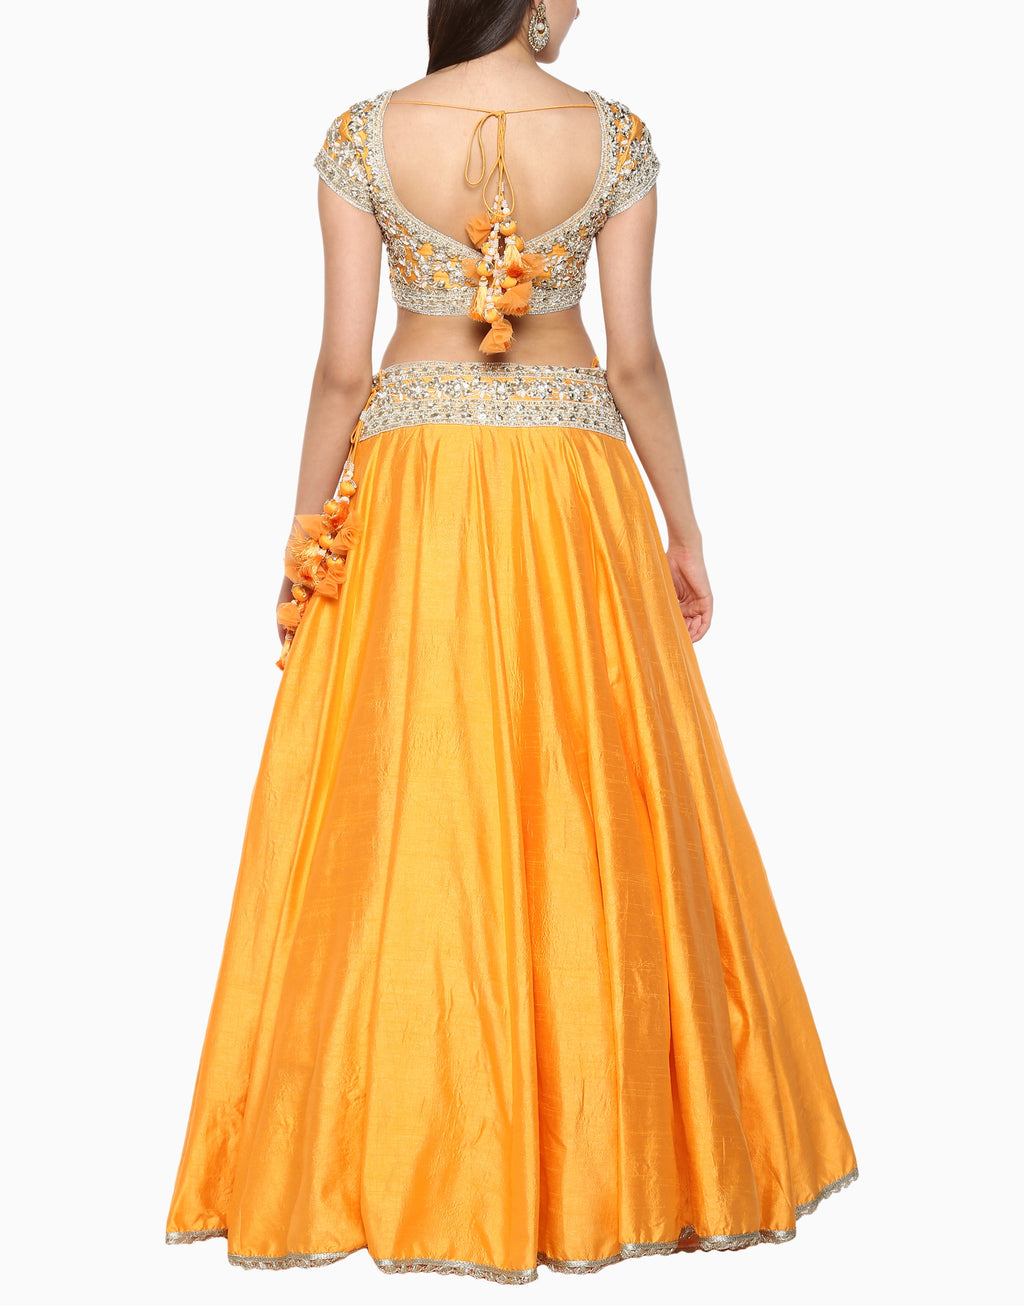 Preeti S Kapoor - Orange Embroidered Lehenga Set - INDIASPOPUP.COM